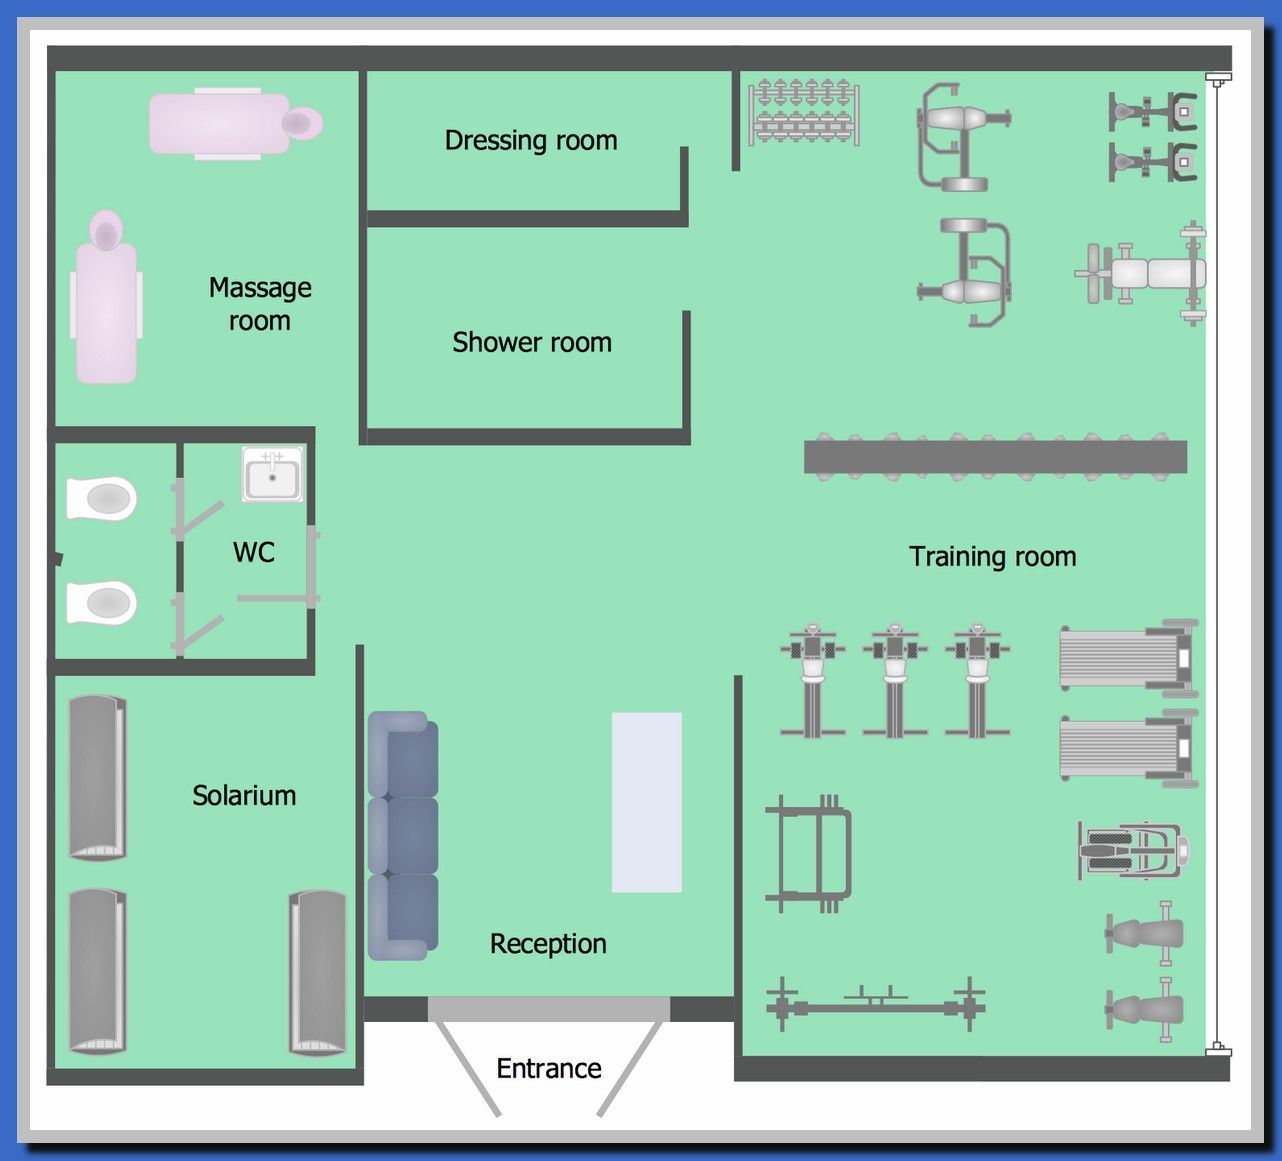 38 Reference Of Dressing Room Design Layout Floor Plans Gym Plans Floor Plans Floor Plan Layout